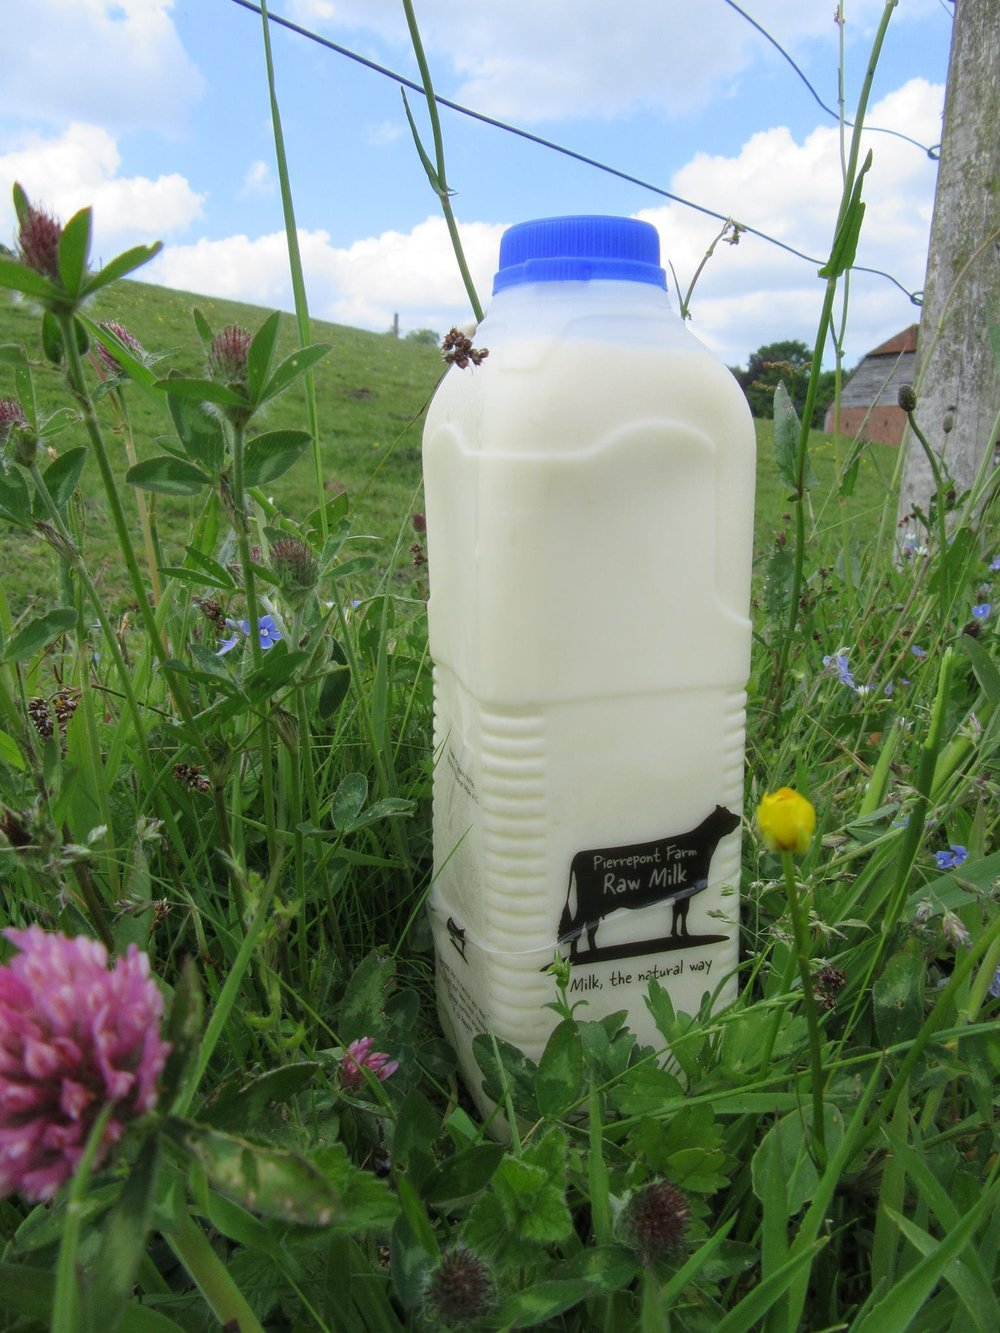 Pierrepont Farm Bottle.jpg